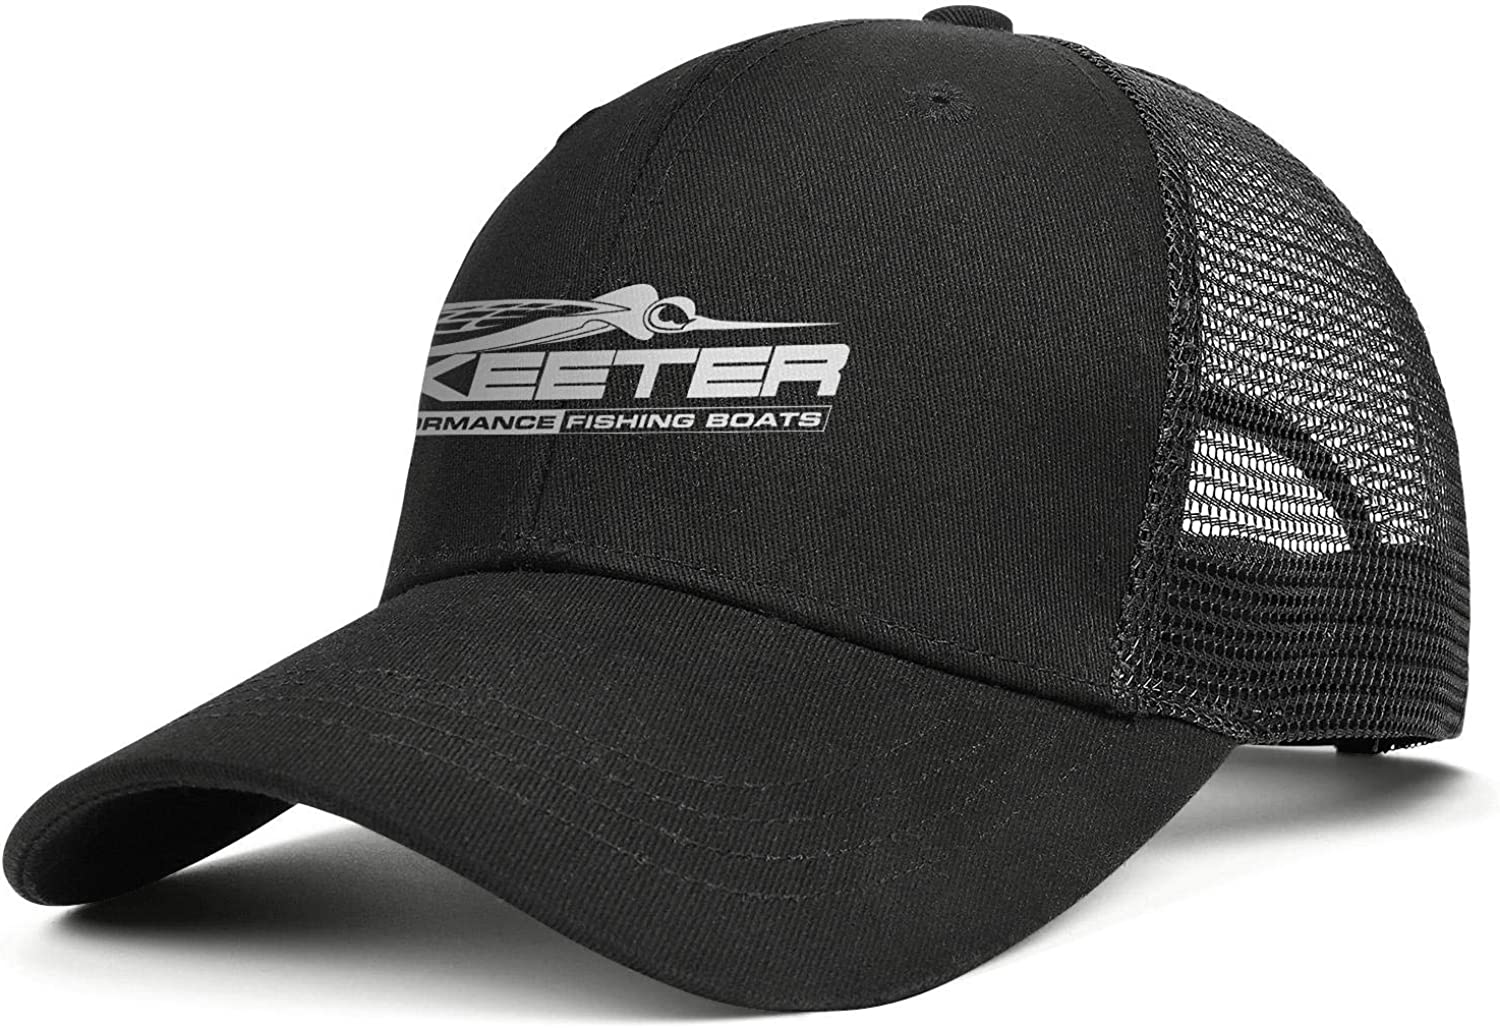 Mens Womens Trucker Hats Cricket Skeeter-Performance-Fishing-Boats-Vintage Baseball Caps Fitted Personalized Fashion